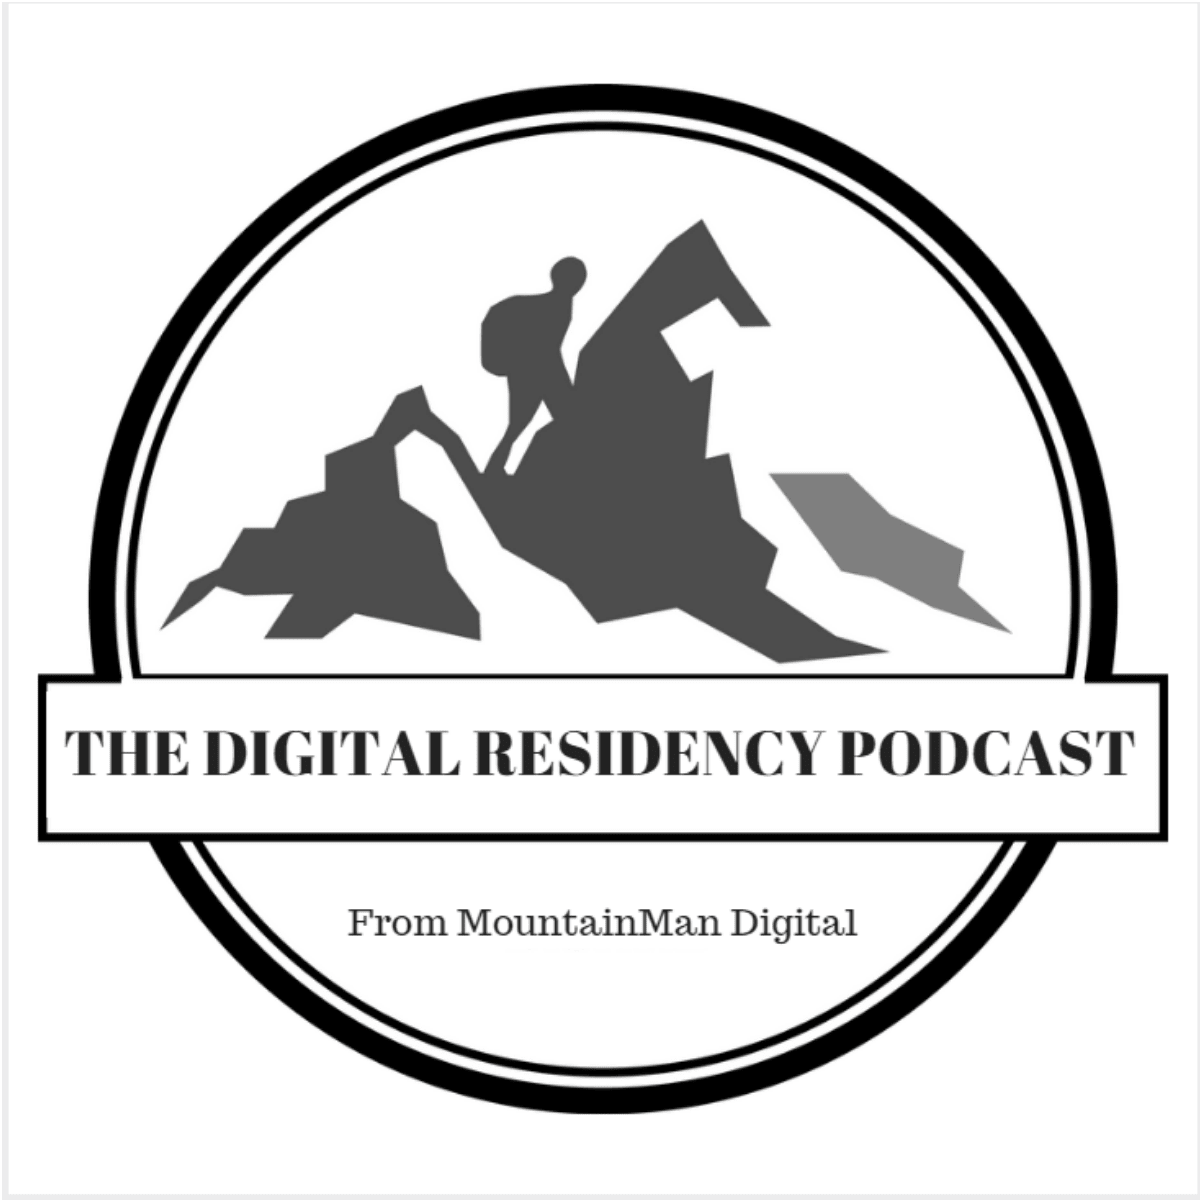 The Digital Residency Podcast: How To Get Started Marketing Your Practice Online TODAY